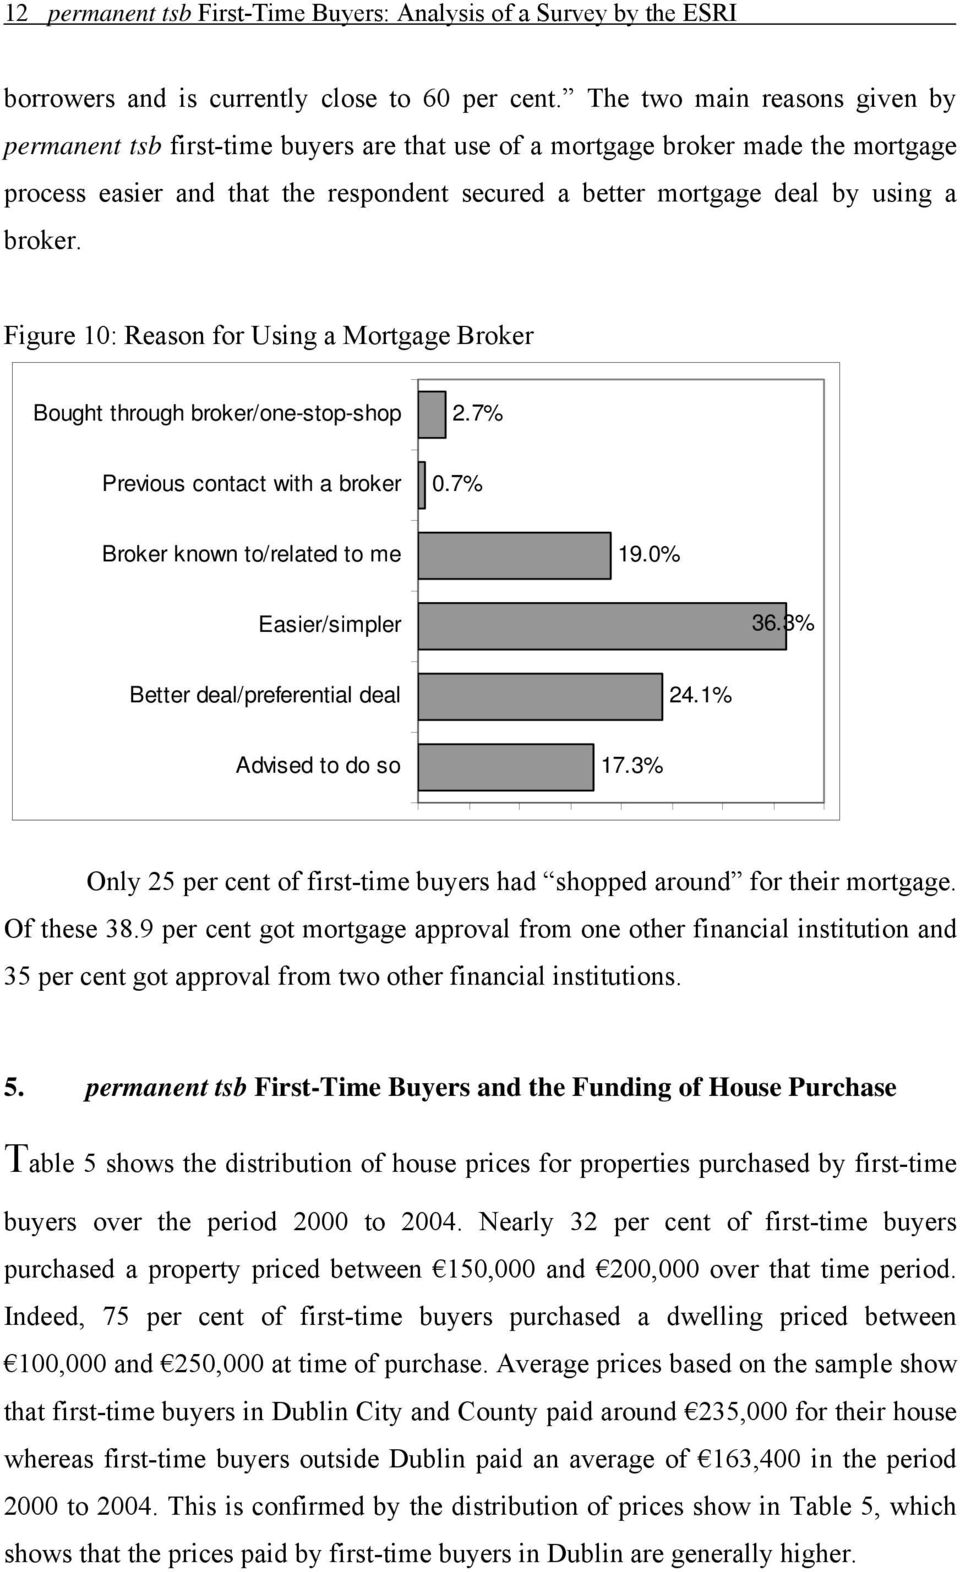 broker. Figure 10: Reason for Using a Mortgage Broker Bought through broker/one-stop-shop 2.7% Previous contact with a broker 0.7% Broker known to/related to me 19.0% Easier/simpler 36.